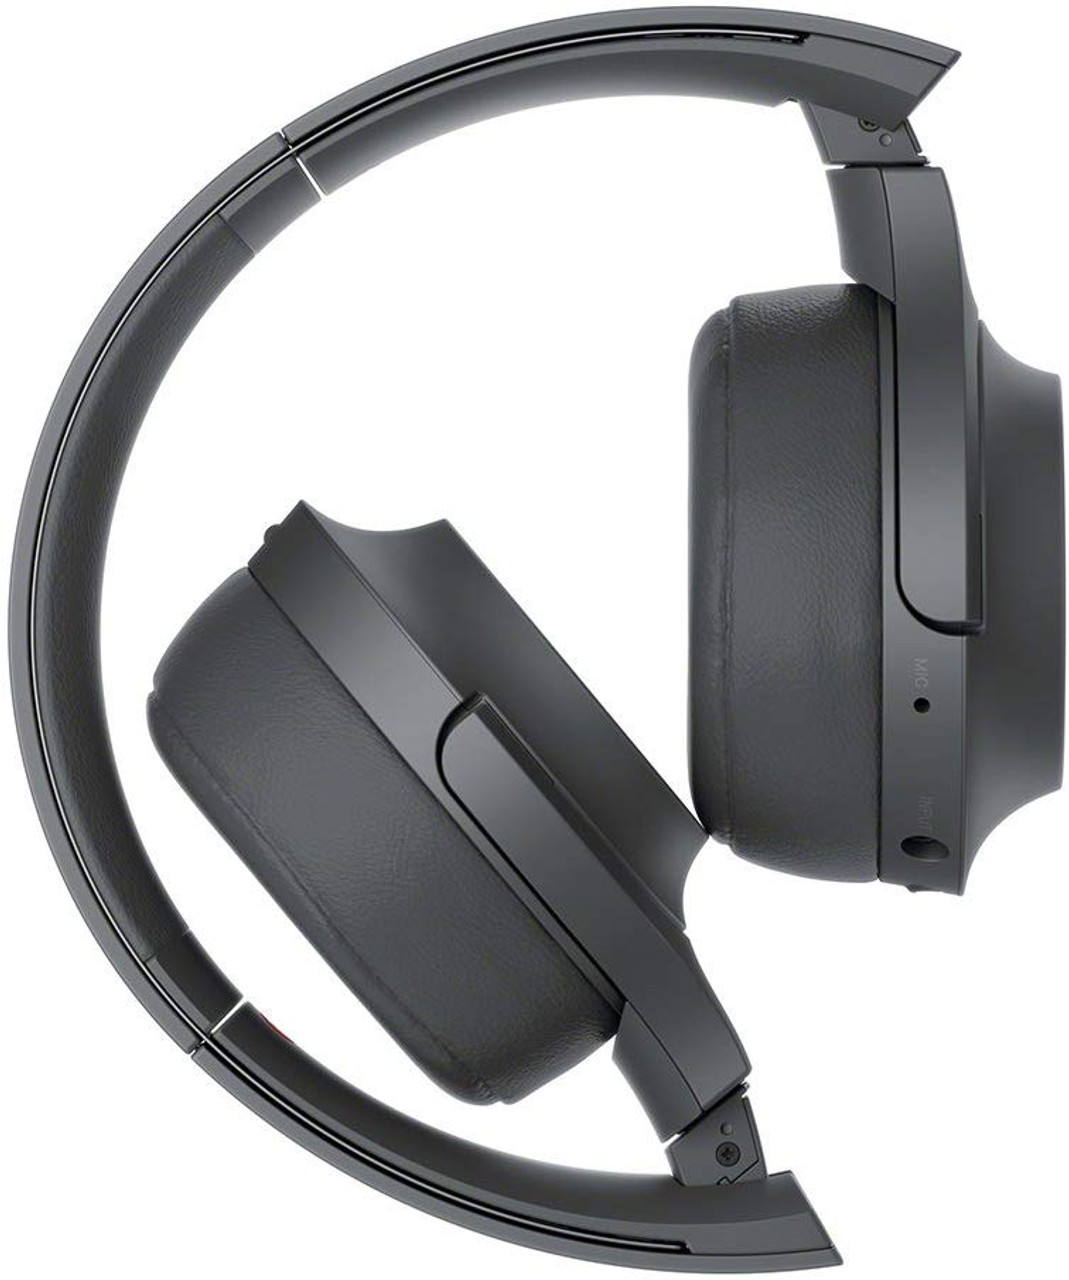 Sony WH-H800 Headphones Gray